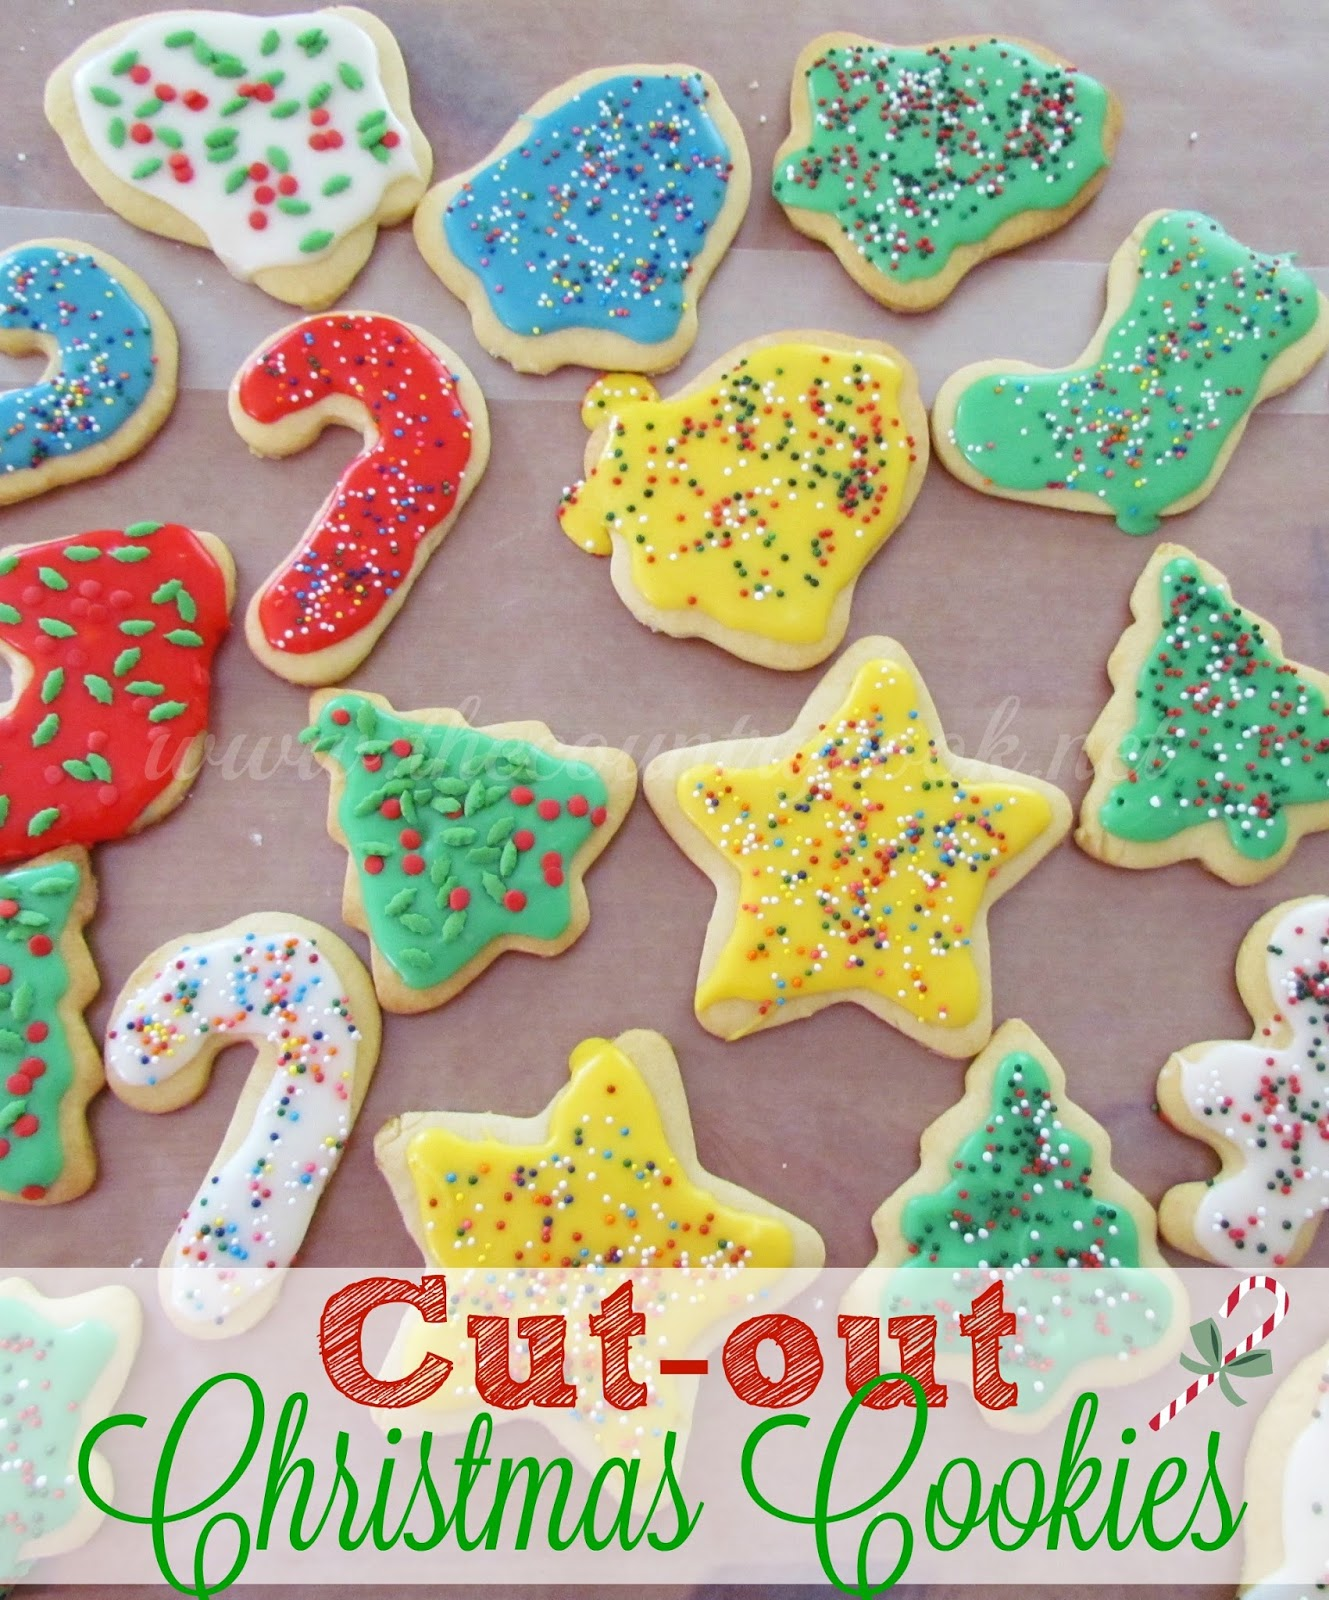 Christmas Cut Out Cookies.Christmas Cut Out Cookies House Cookies